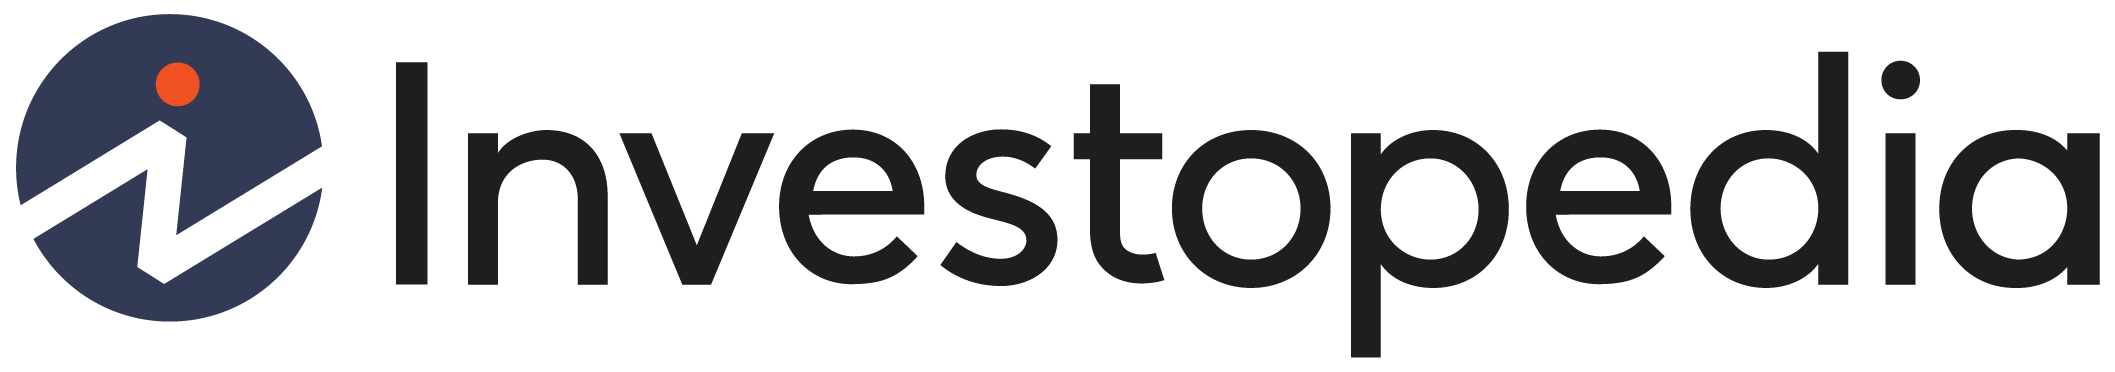 investopedia-logo-black